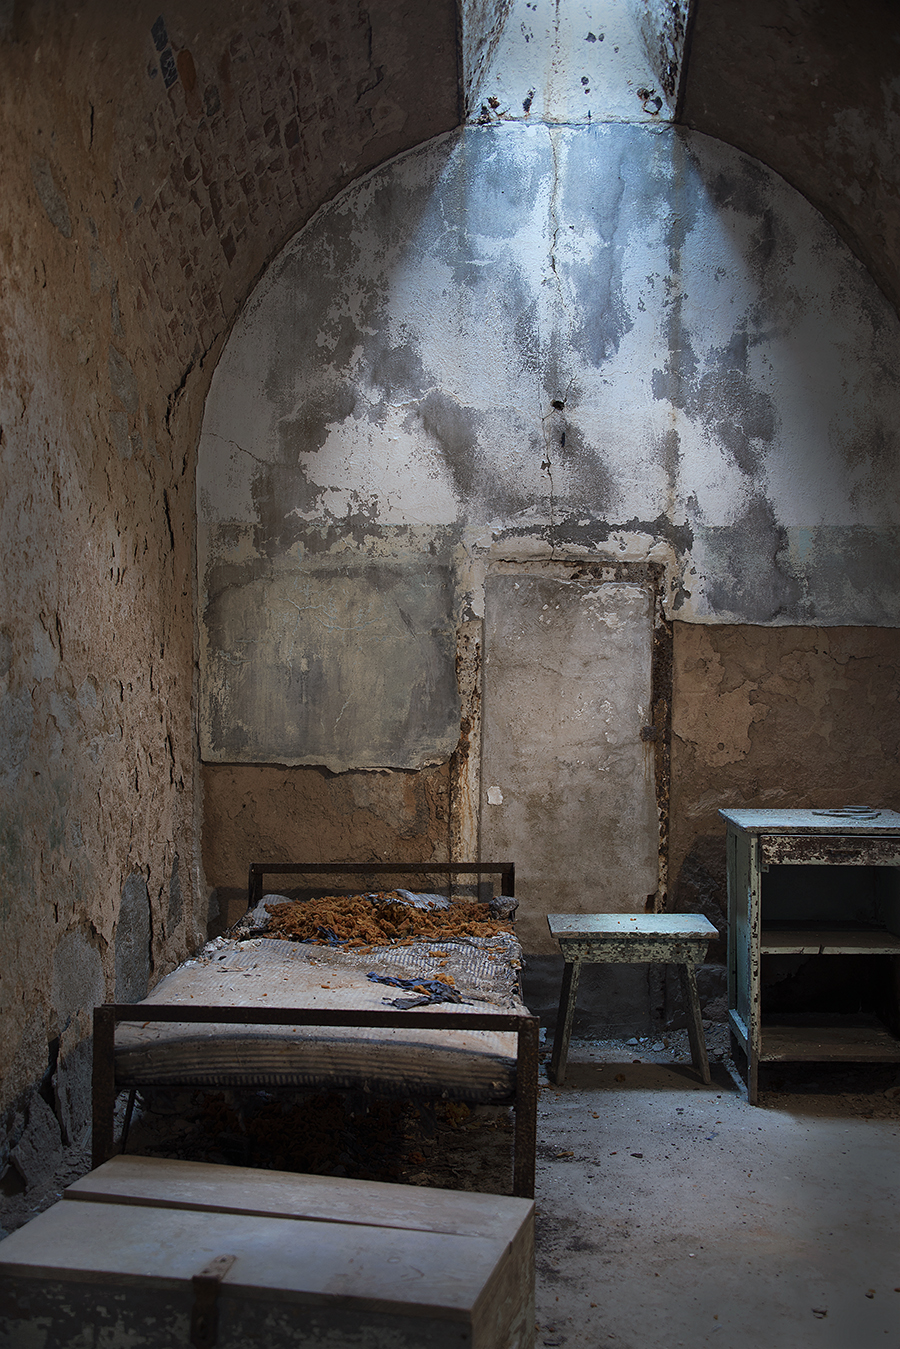 Zoe_Photography_EasternStatePenitentiary_Philadelphia_TheLostPast_Blue_Life_Bitterness